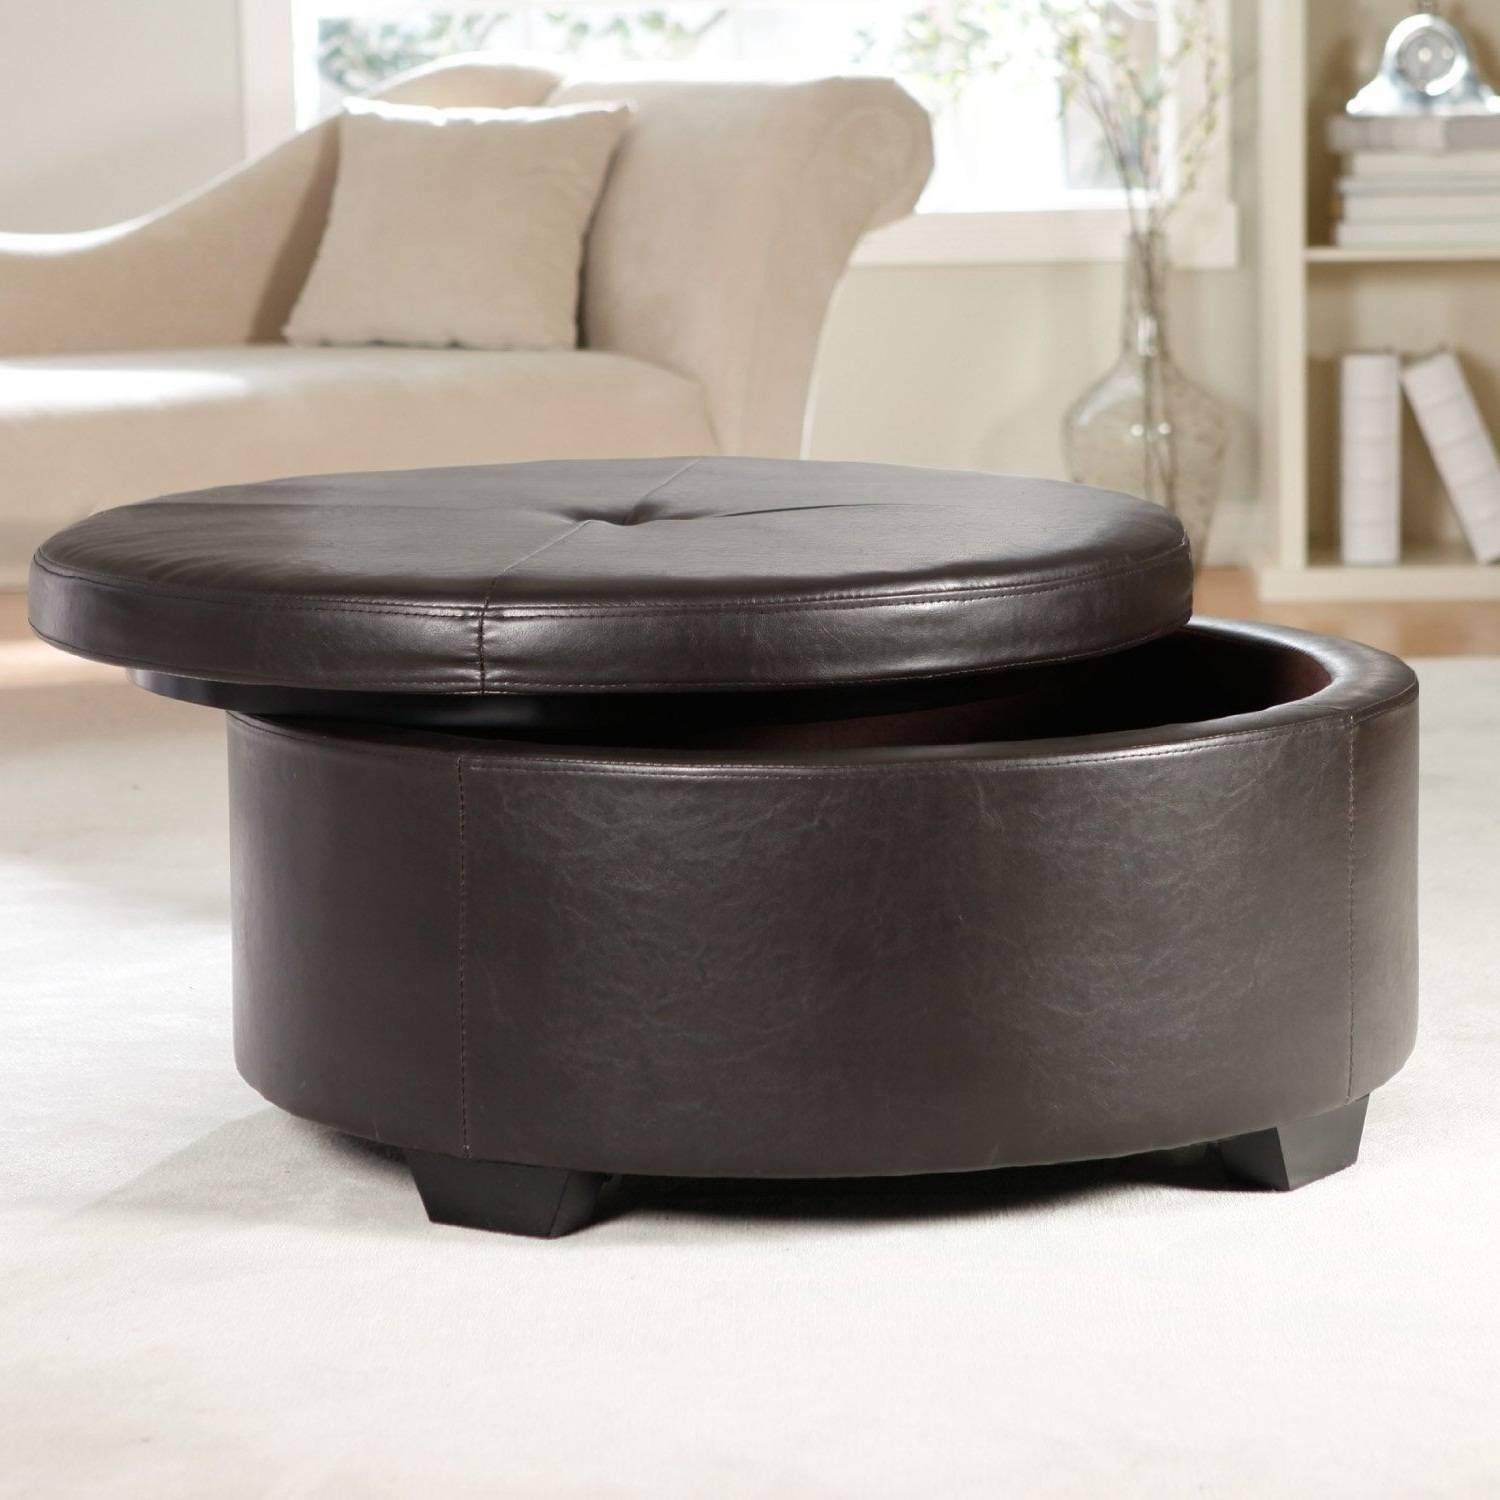 Coffee Table: Outstanding Round Storage Coffee Table Designs Small intended for Circular Coffee Tables With Storage (Image 10 of 30)